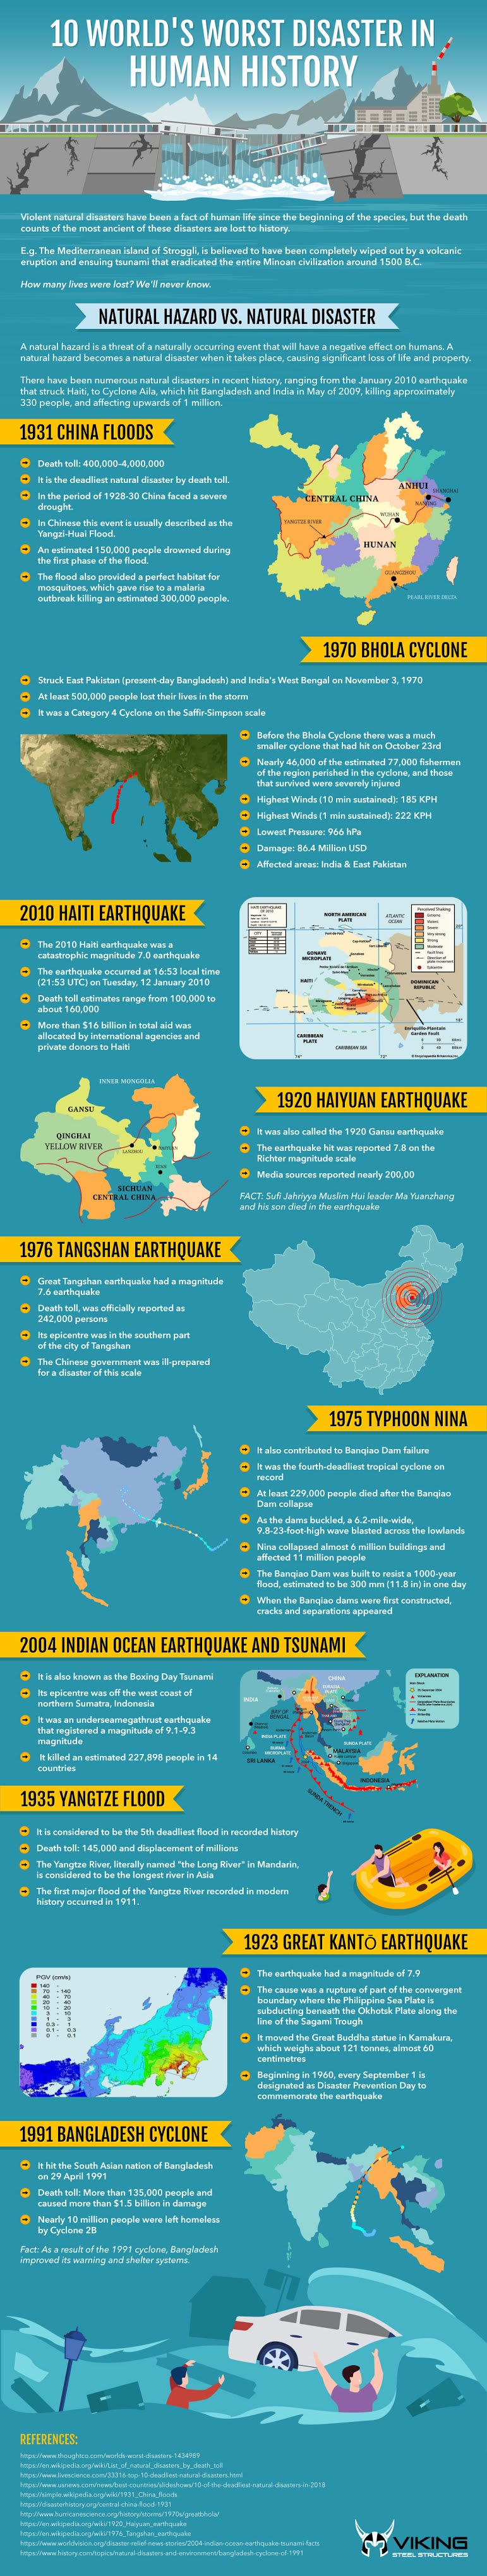 10 World's Worst Disaster In Human History #infographic #Education #infographics #Human History